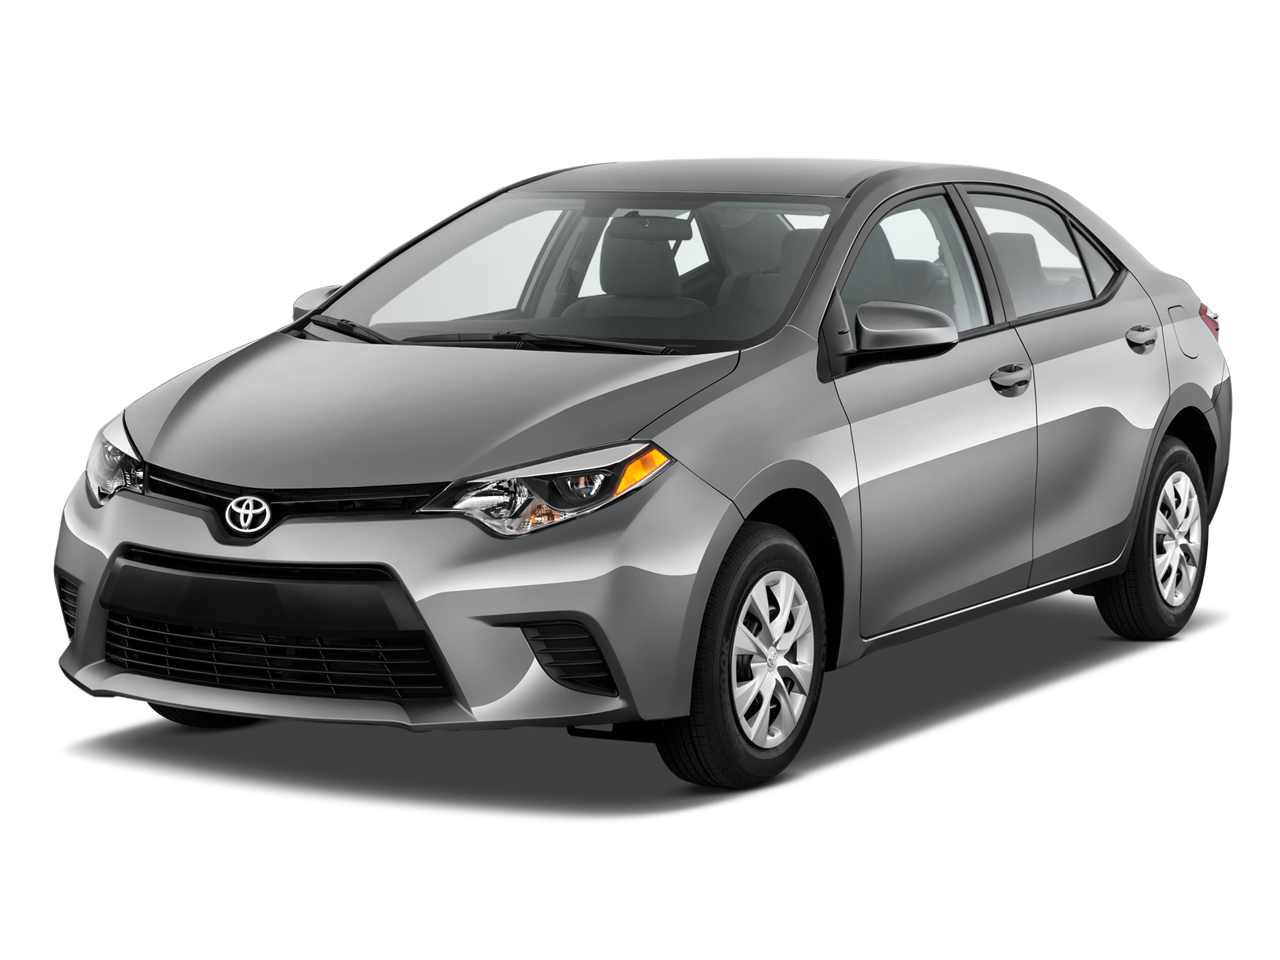 new 2017 toyota corolla l near morristown nj toyota of morristown. Black Bedroom Furniture Sets. Home Design Ideas